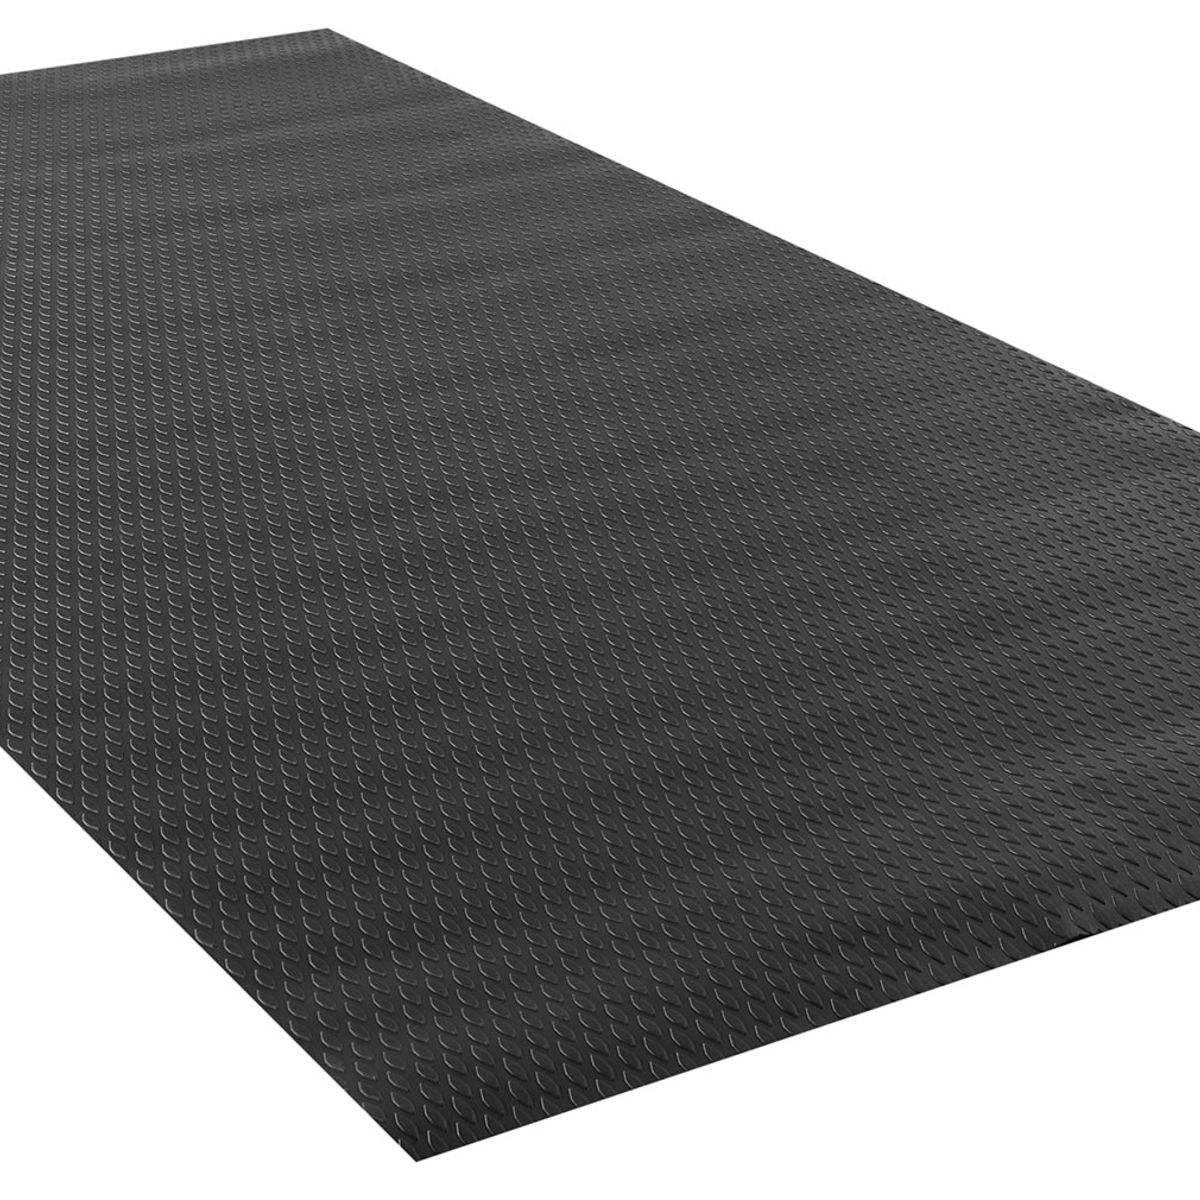 Weather Guard - Weather Guard Van Floor Mat, Rectangle, 70i in x 124 in (89011)